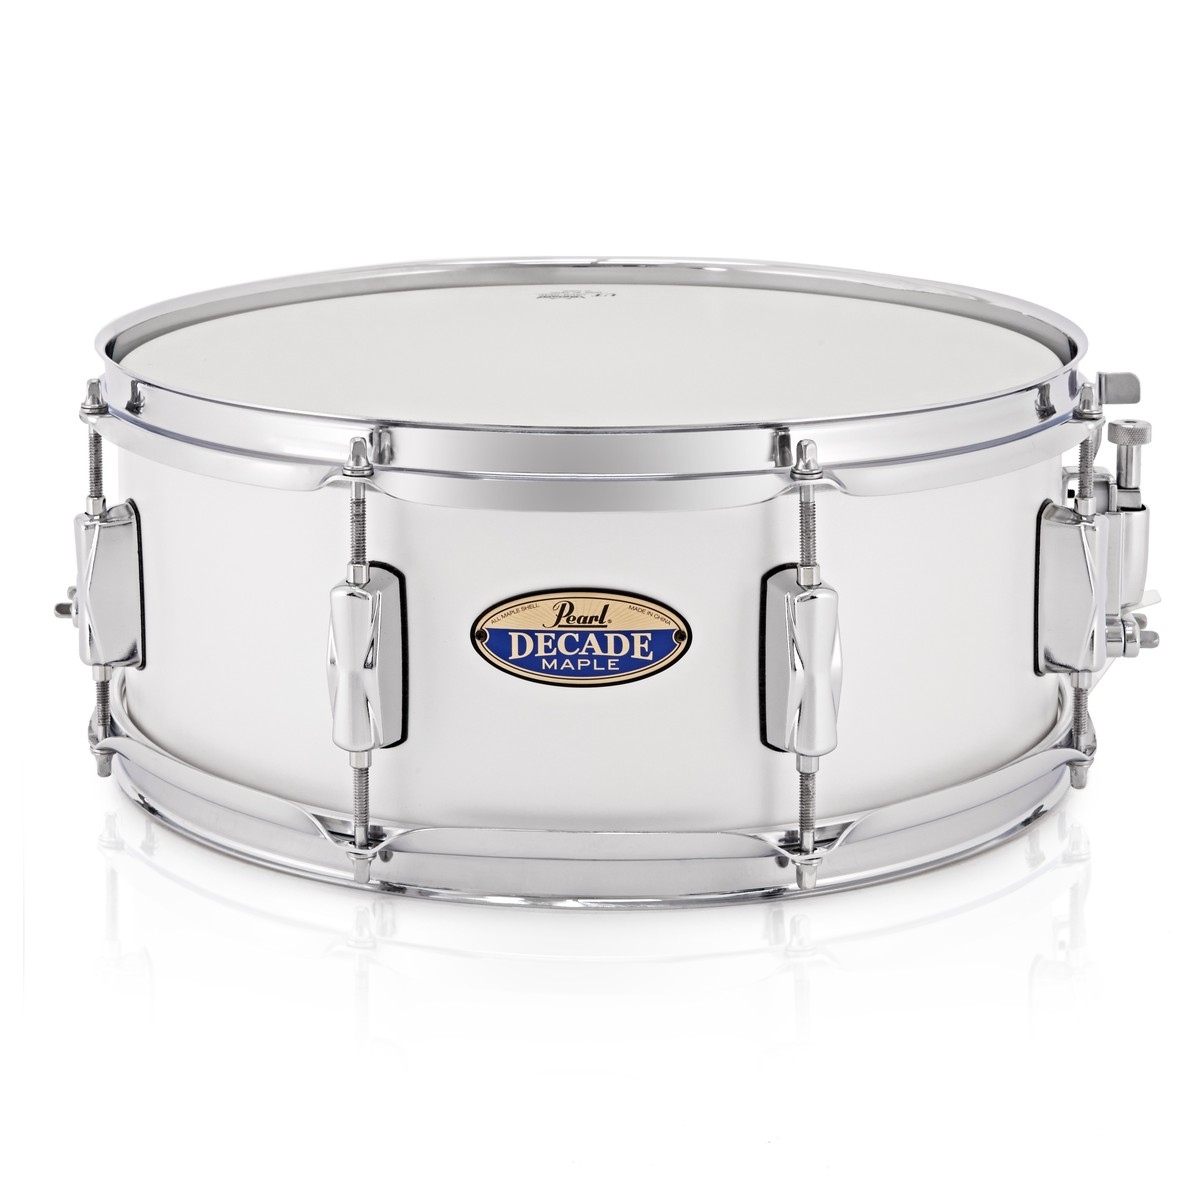 pearl decade maple 14 x 5 5 snare drum white satin pearl at. Black Bedroom Furniture Sets. Home Design Ideas